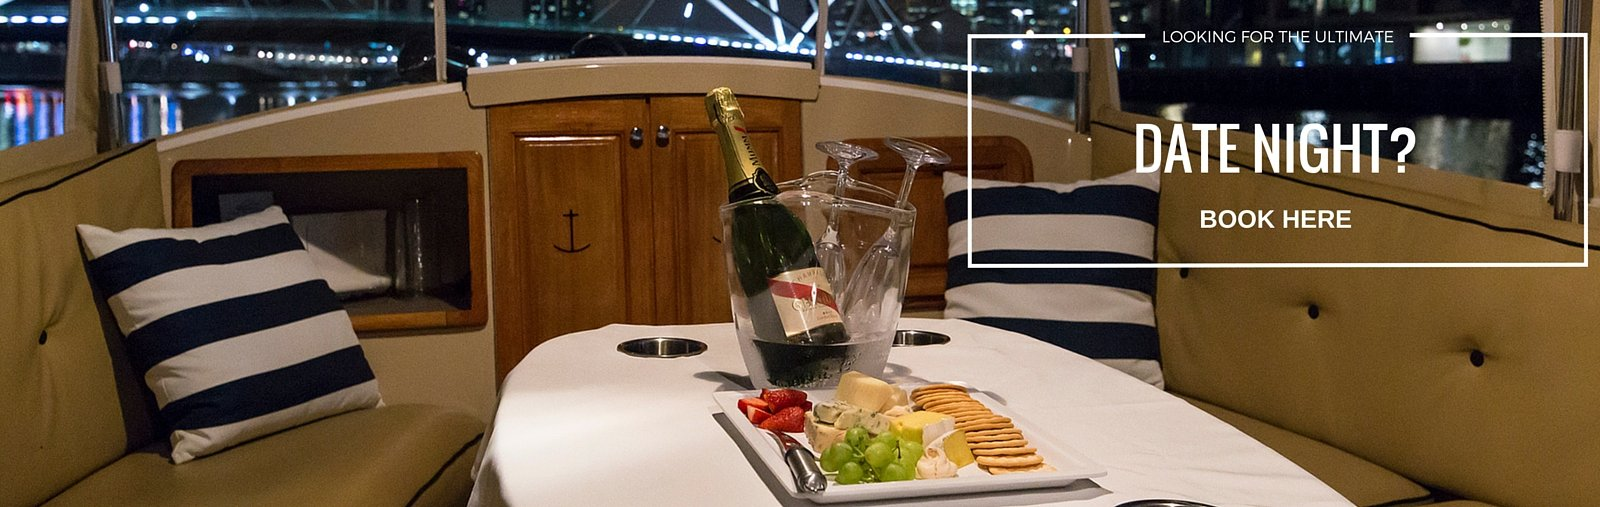 Date night in Melbourne take a romantic cruise on the Yarra River